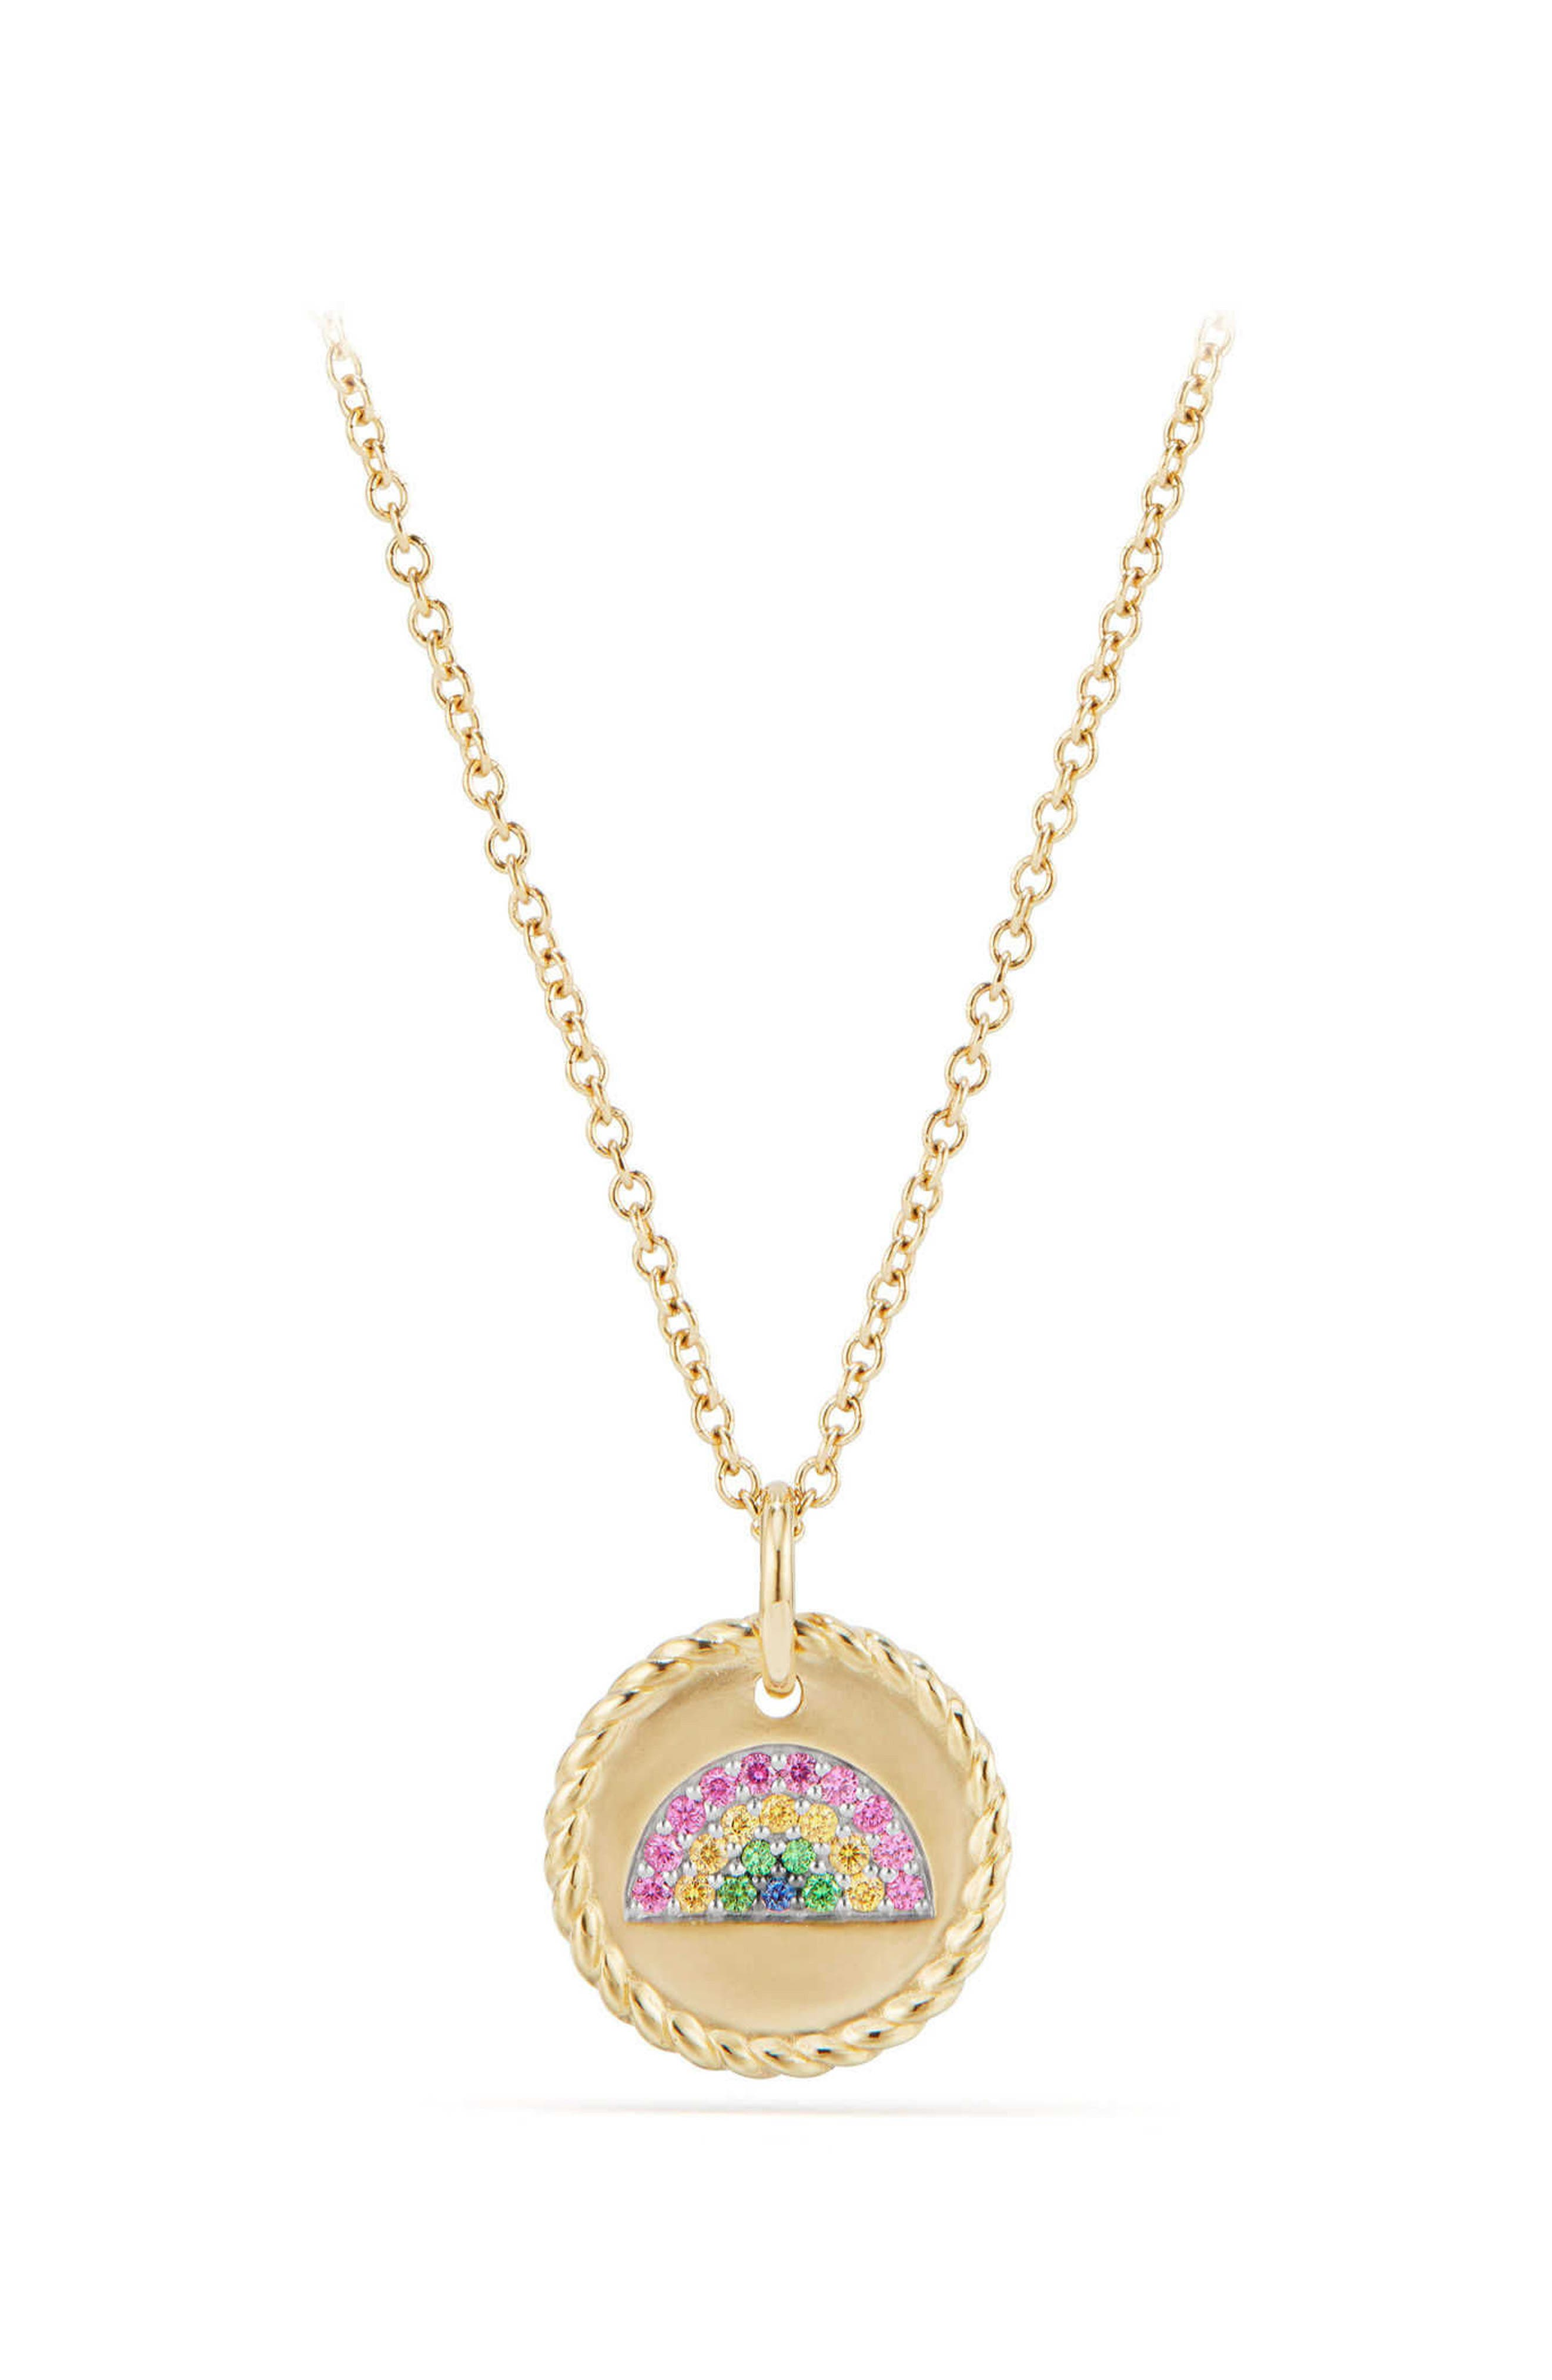 Cable Collectibles Rainbow Necklace with Pink & Yellow Sapphires & Tsavorite in 18K Gold,                             Main thumbnail 1, color,                             Gold/ Pink Sapphire